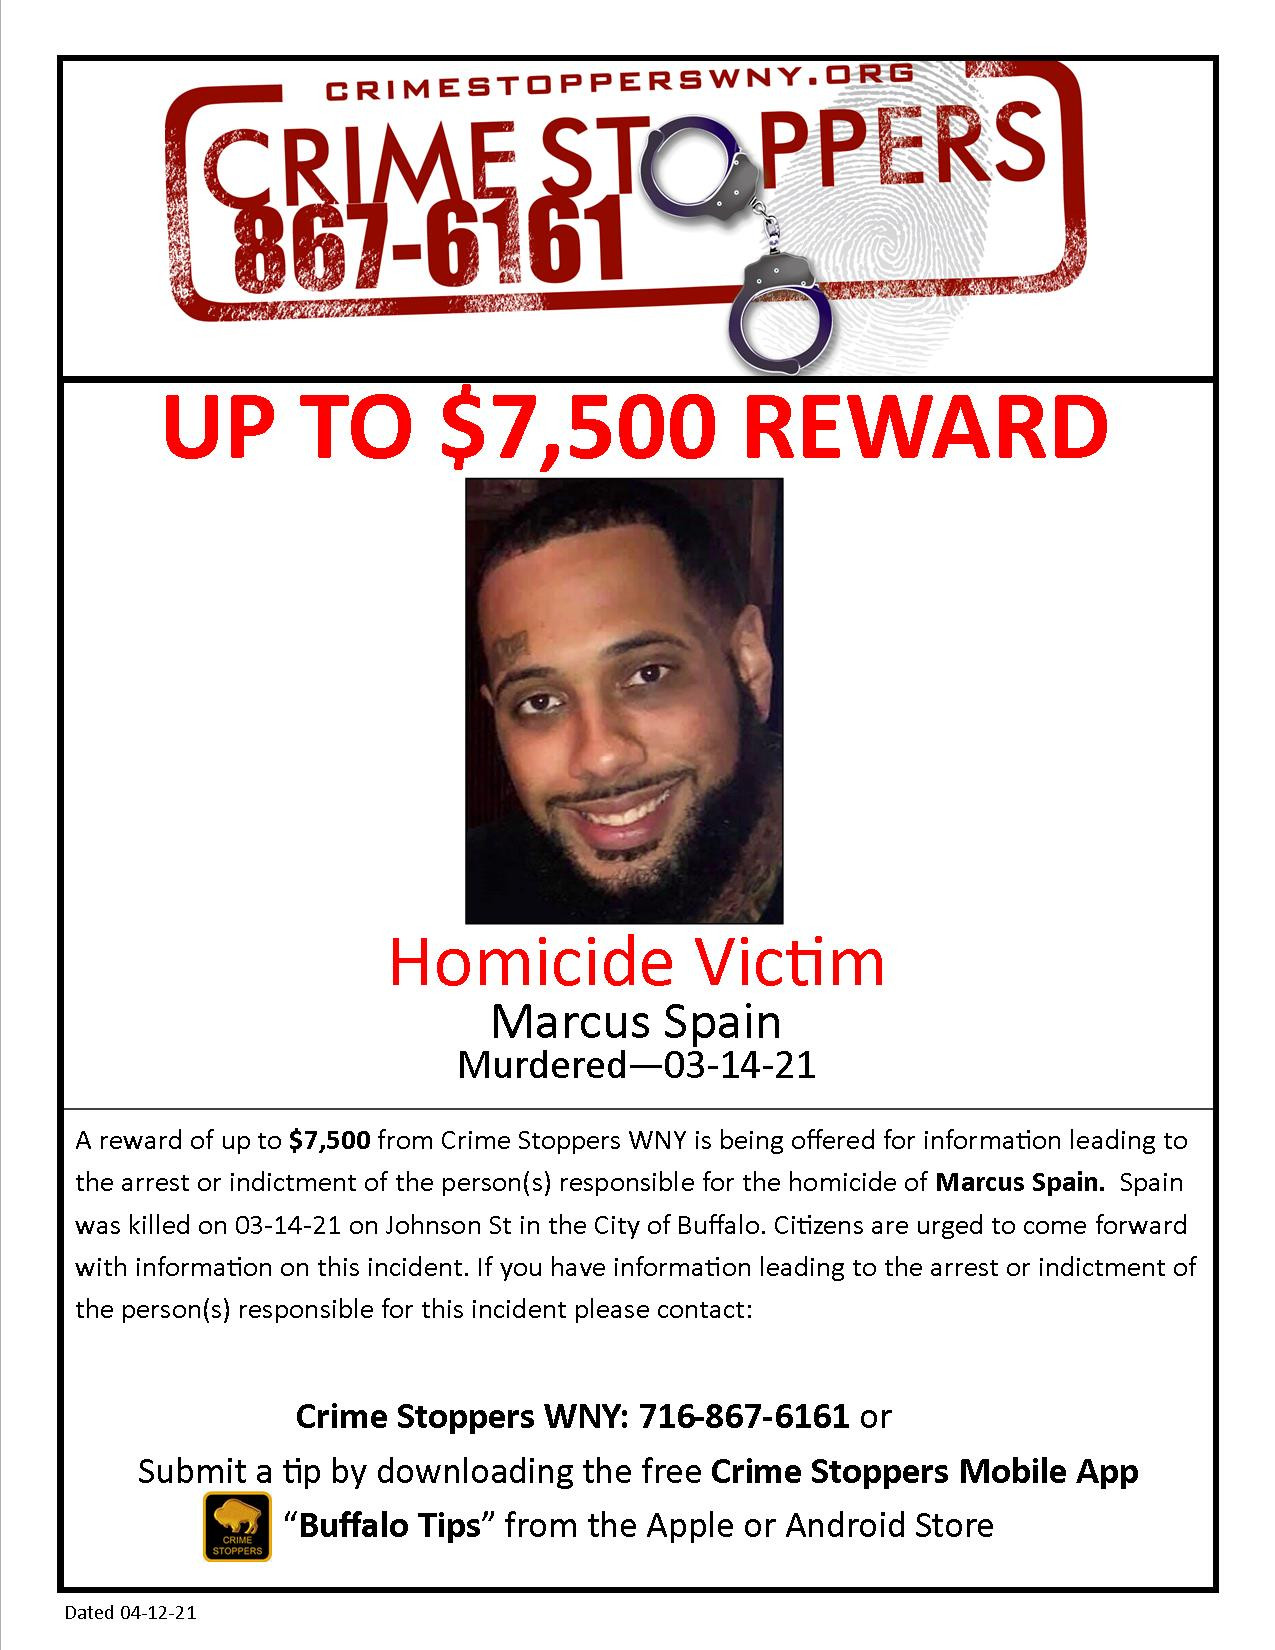 CrimeStoppers_HomicideVictim_MarcusSpain (1)